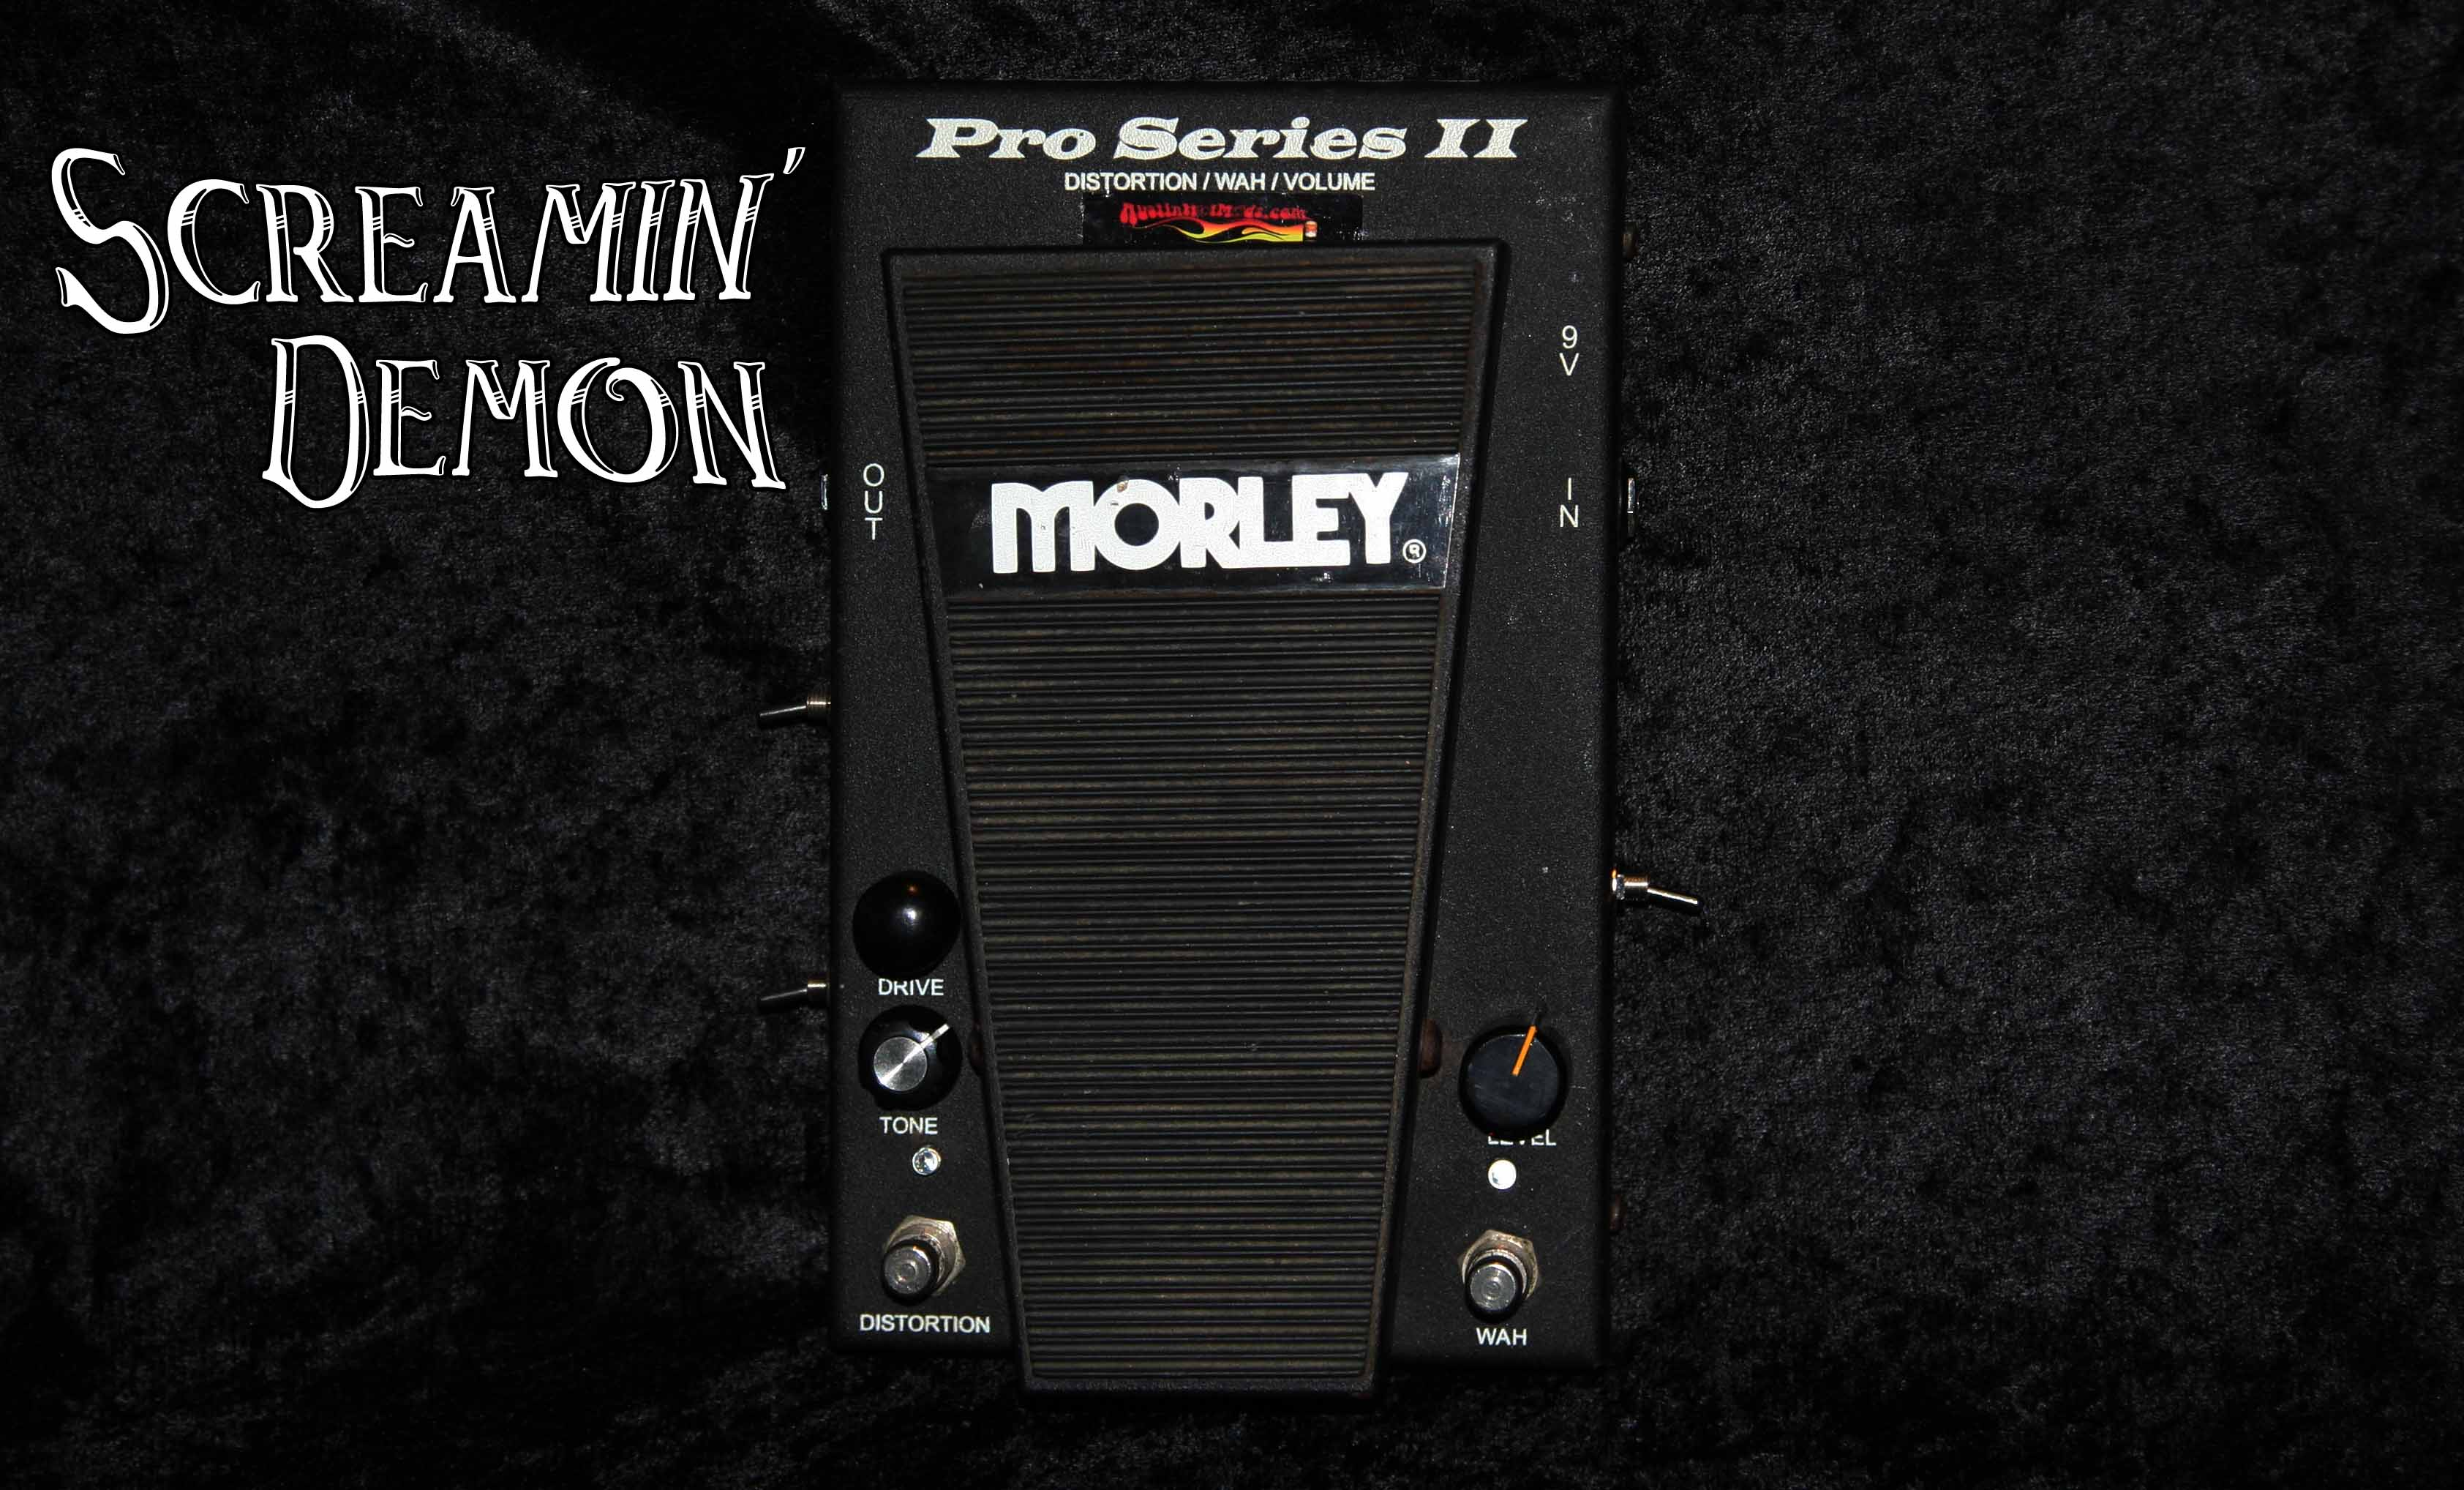 Morley Pro Series Ii Wah Austin Hot Mods Schematic In Addition Volume Pedal On Dunlop Mod Of The Month 10 Off